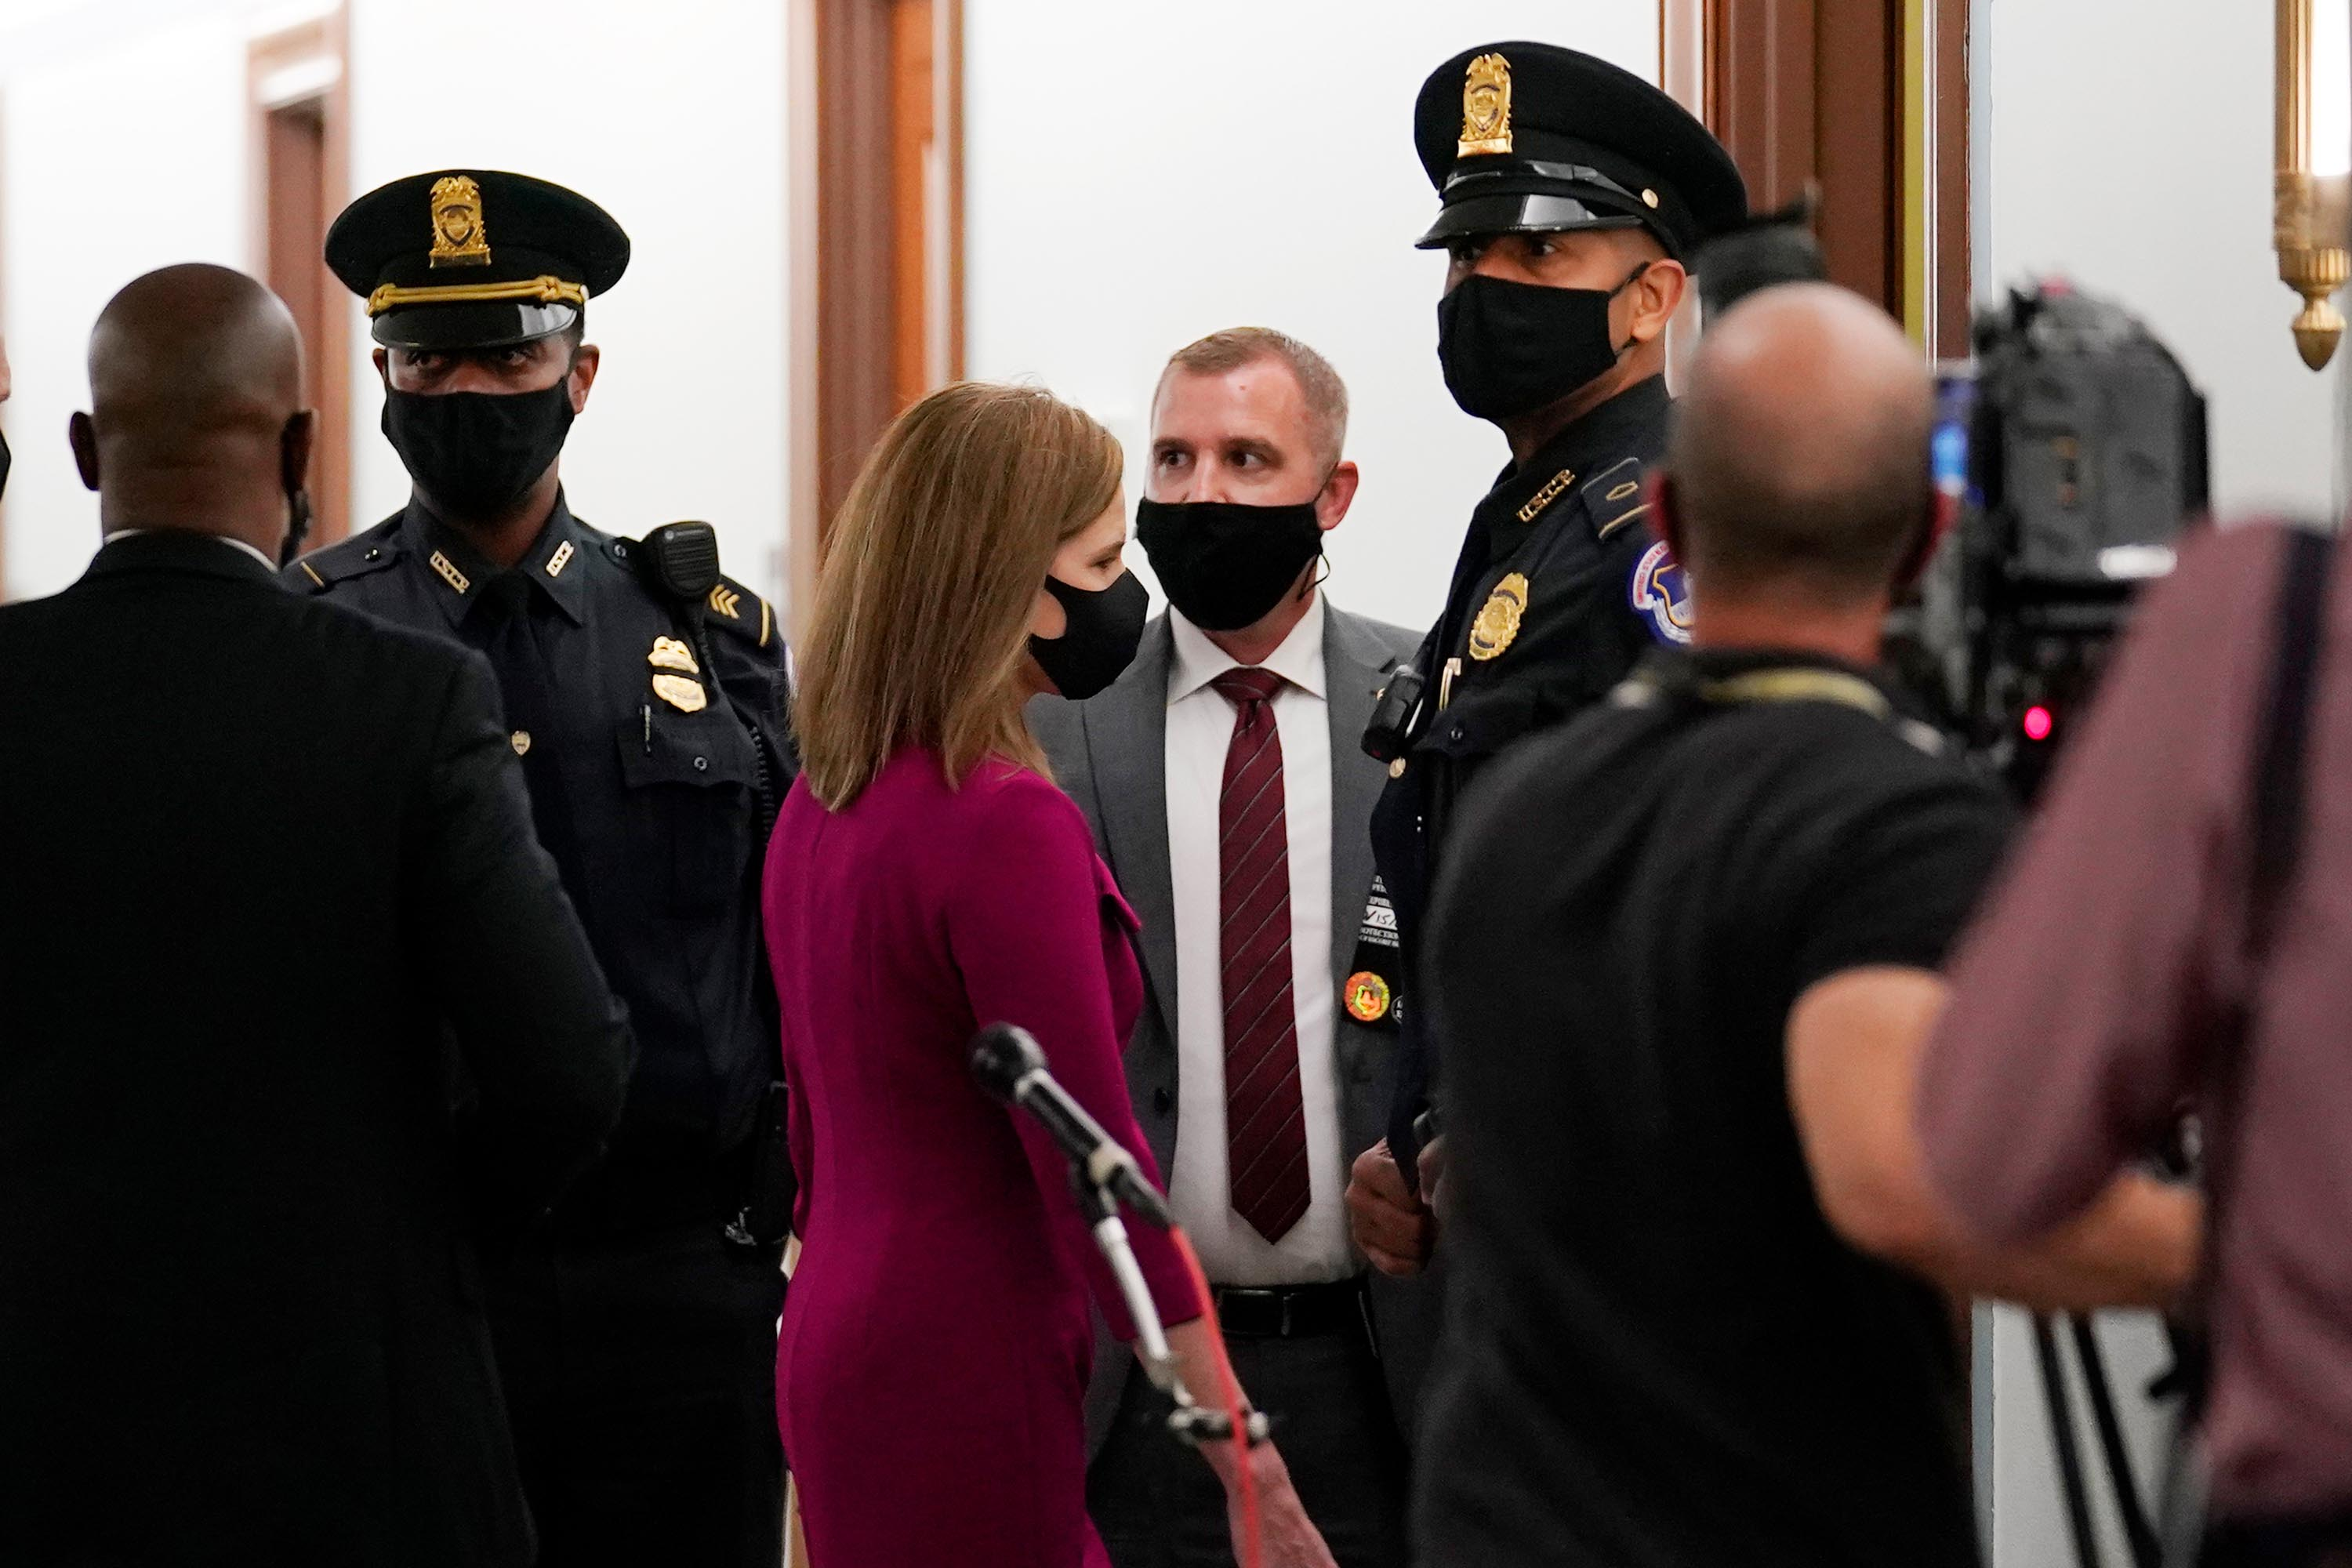 Supreme Court nominee Amy Coney Barrett arrives on Capitol Hill to begin her confirmation hearing before the Senate Judiciary Committee, Monday, October 12 on Capitol Hill.